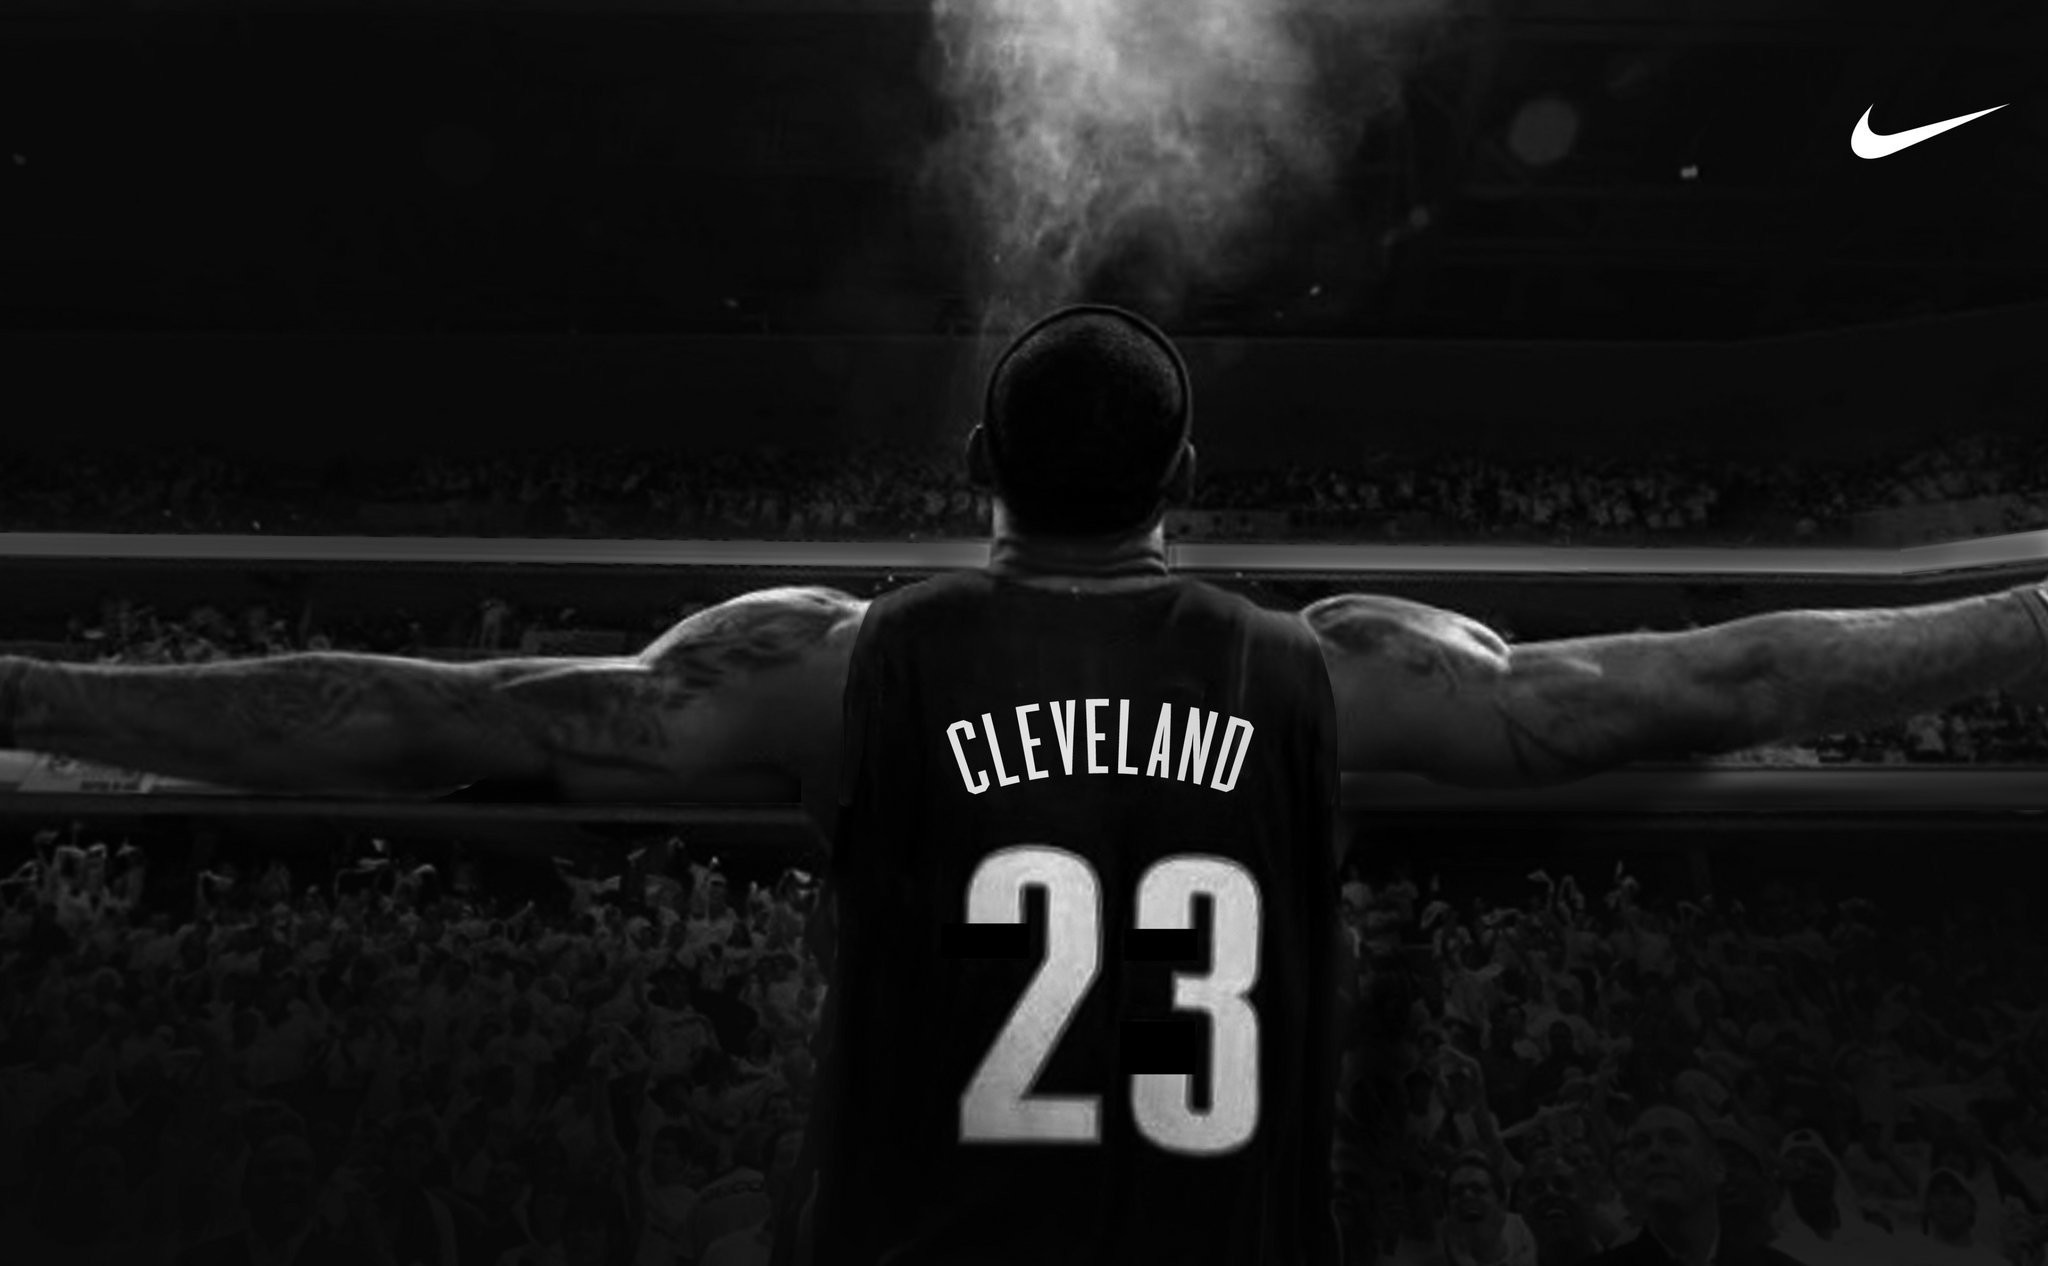 2048x1266 The new LeBron James banner is set to go up across form the Q USATSI